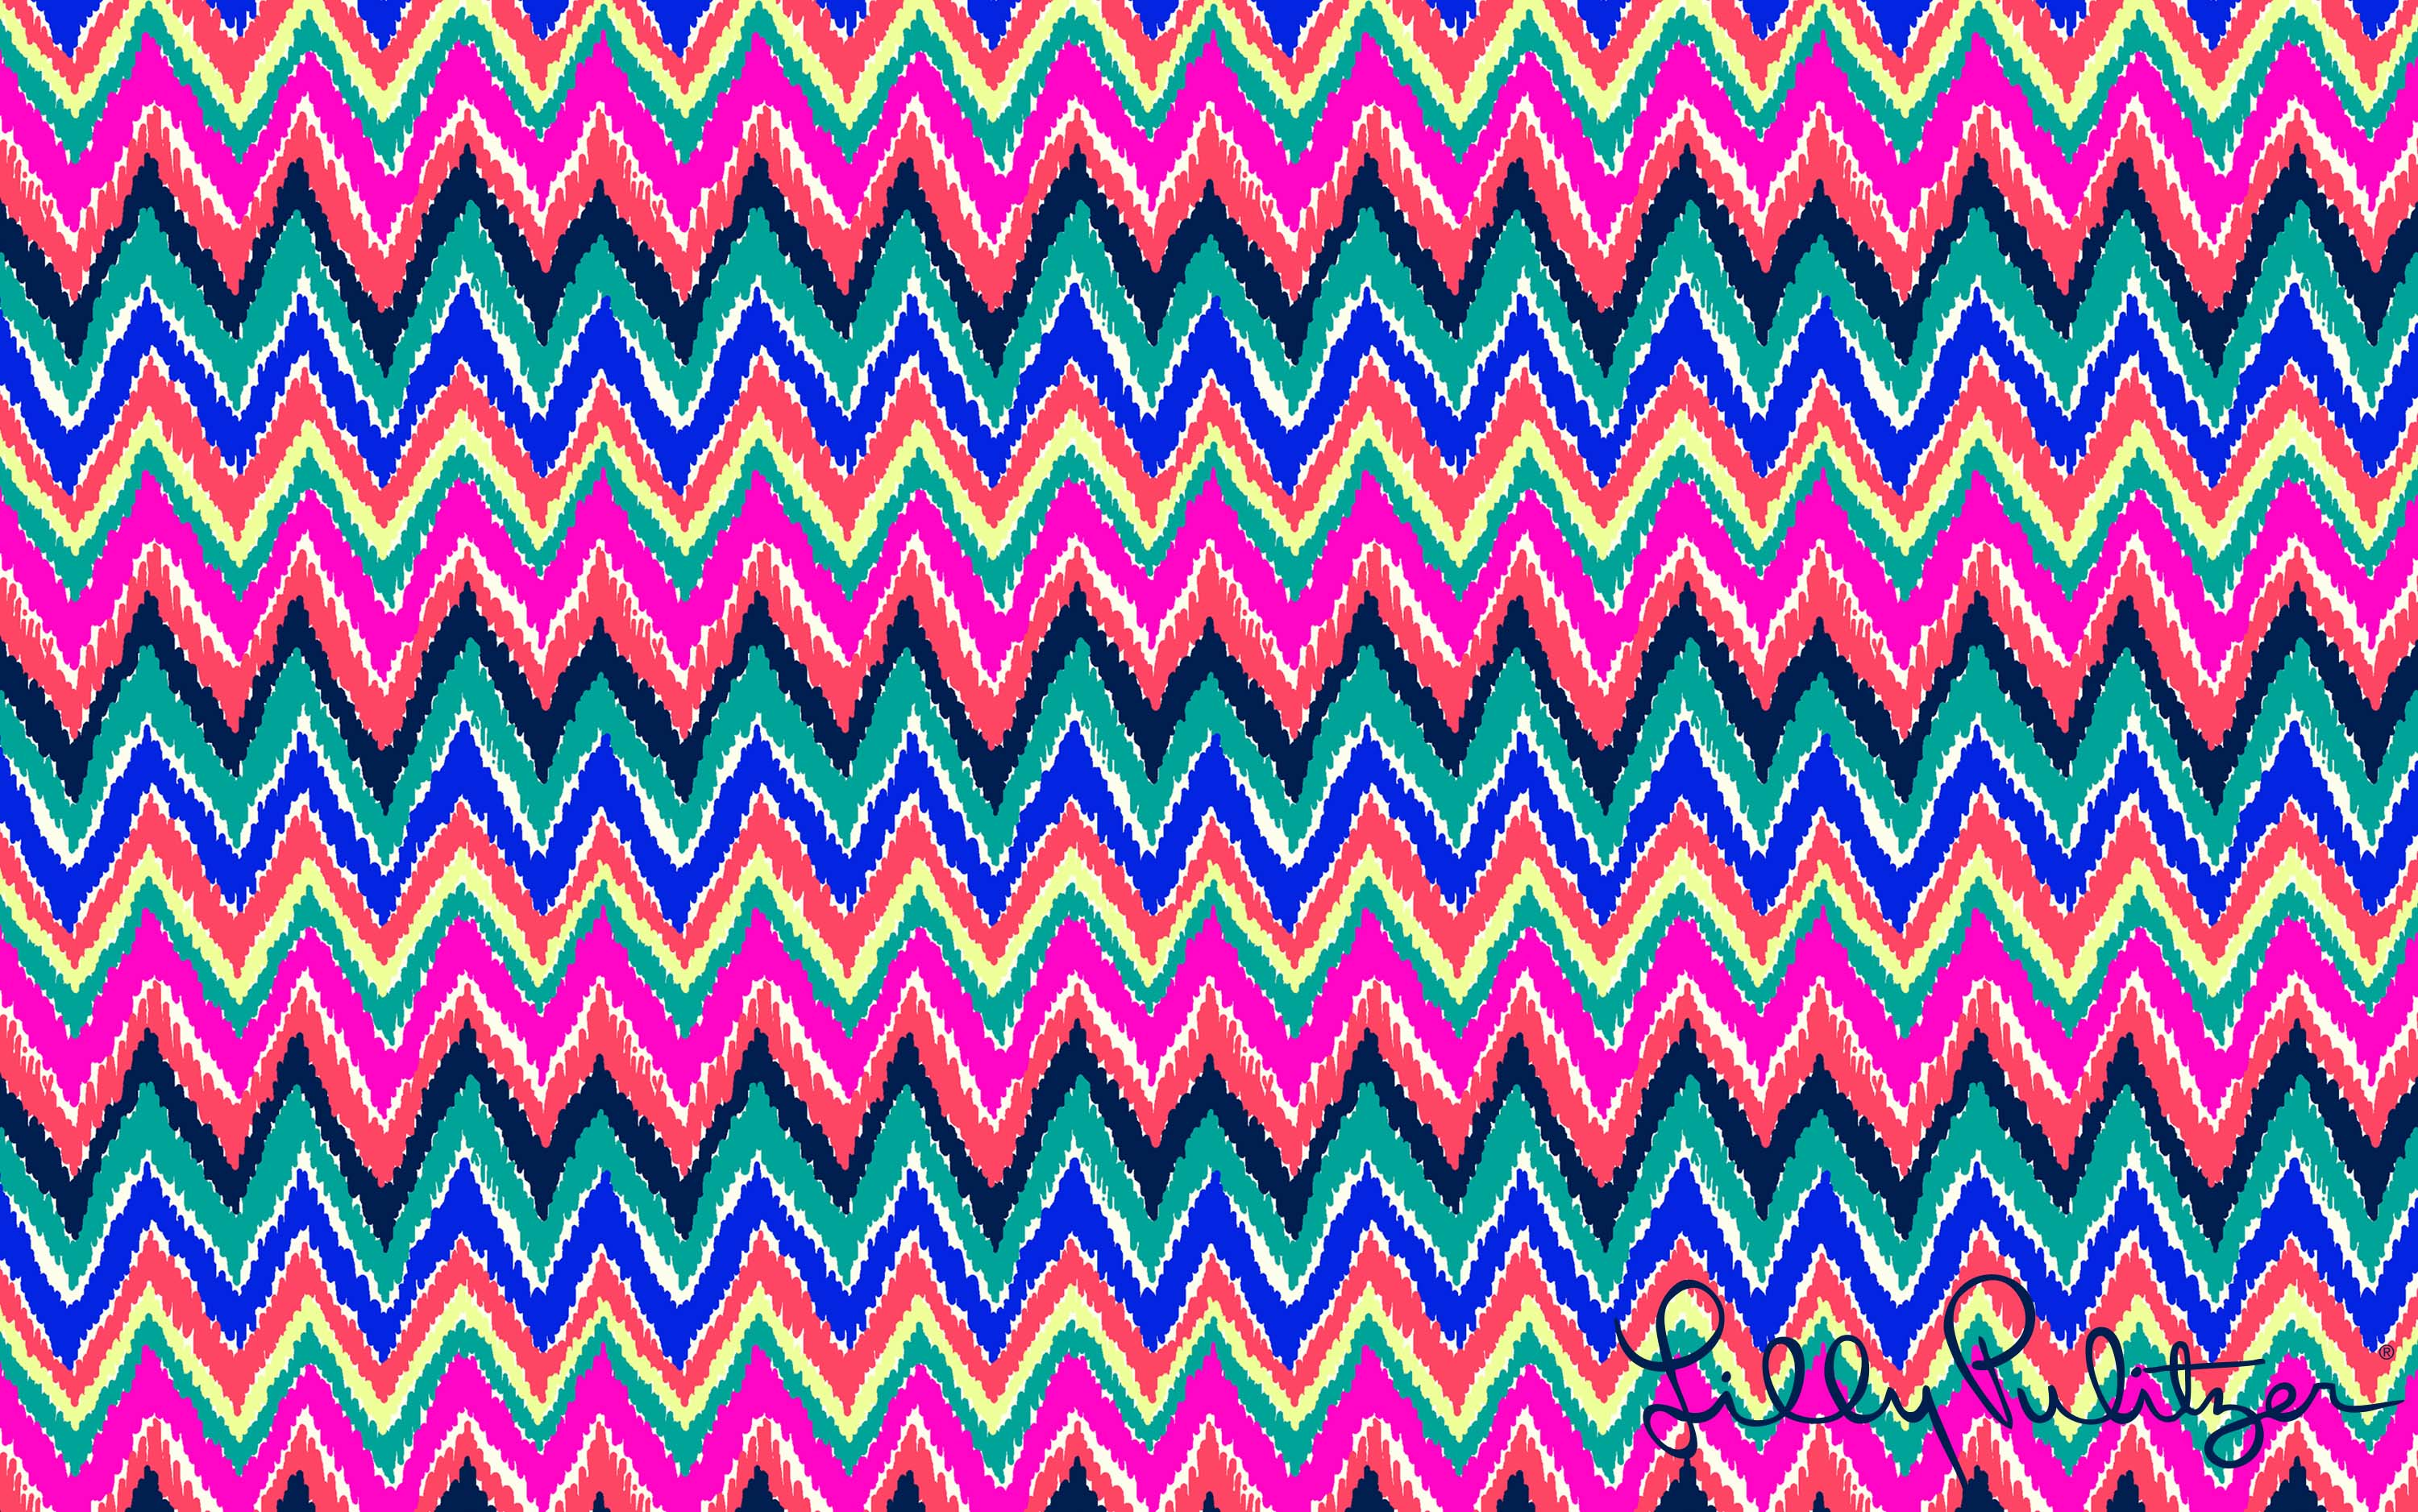 Lilly Pulitzer Backgrounds Purple   Pix For Web 3000x1876